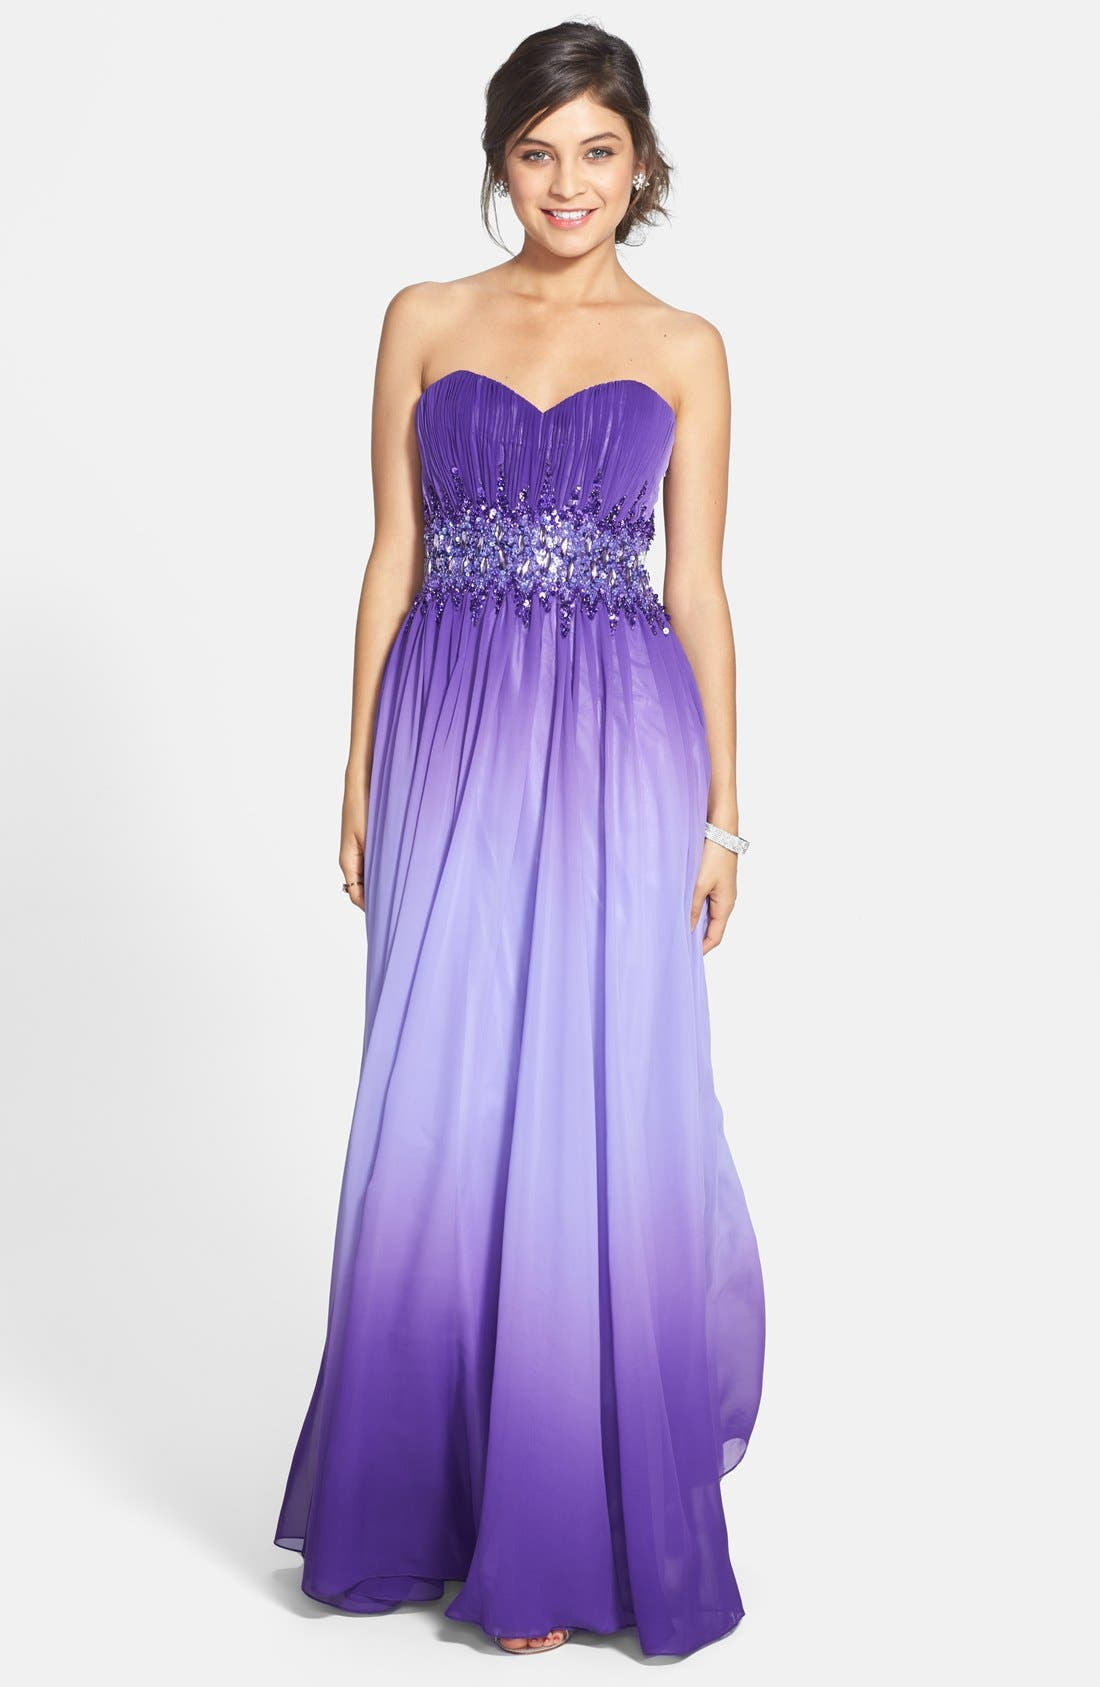 Main Image - Sean Collection Beaded Waist Strapless Ball Gown